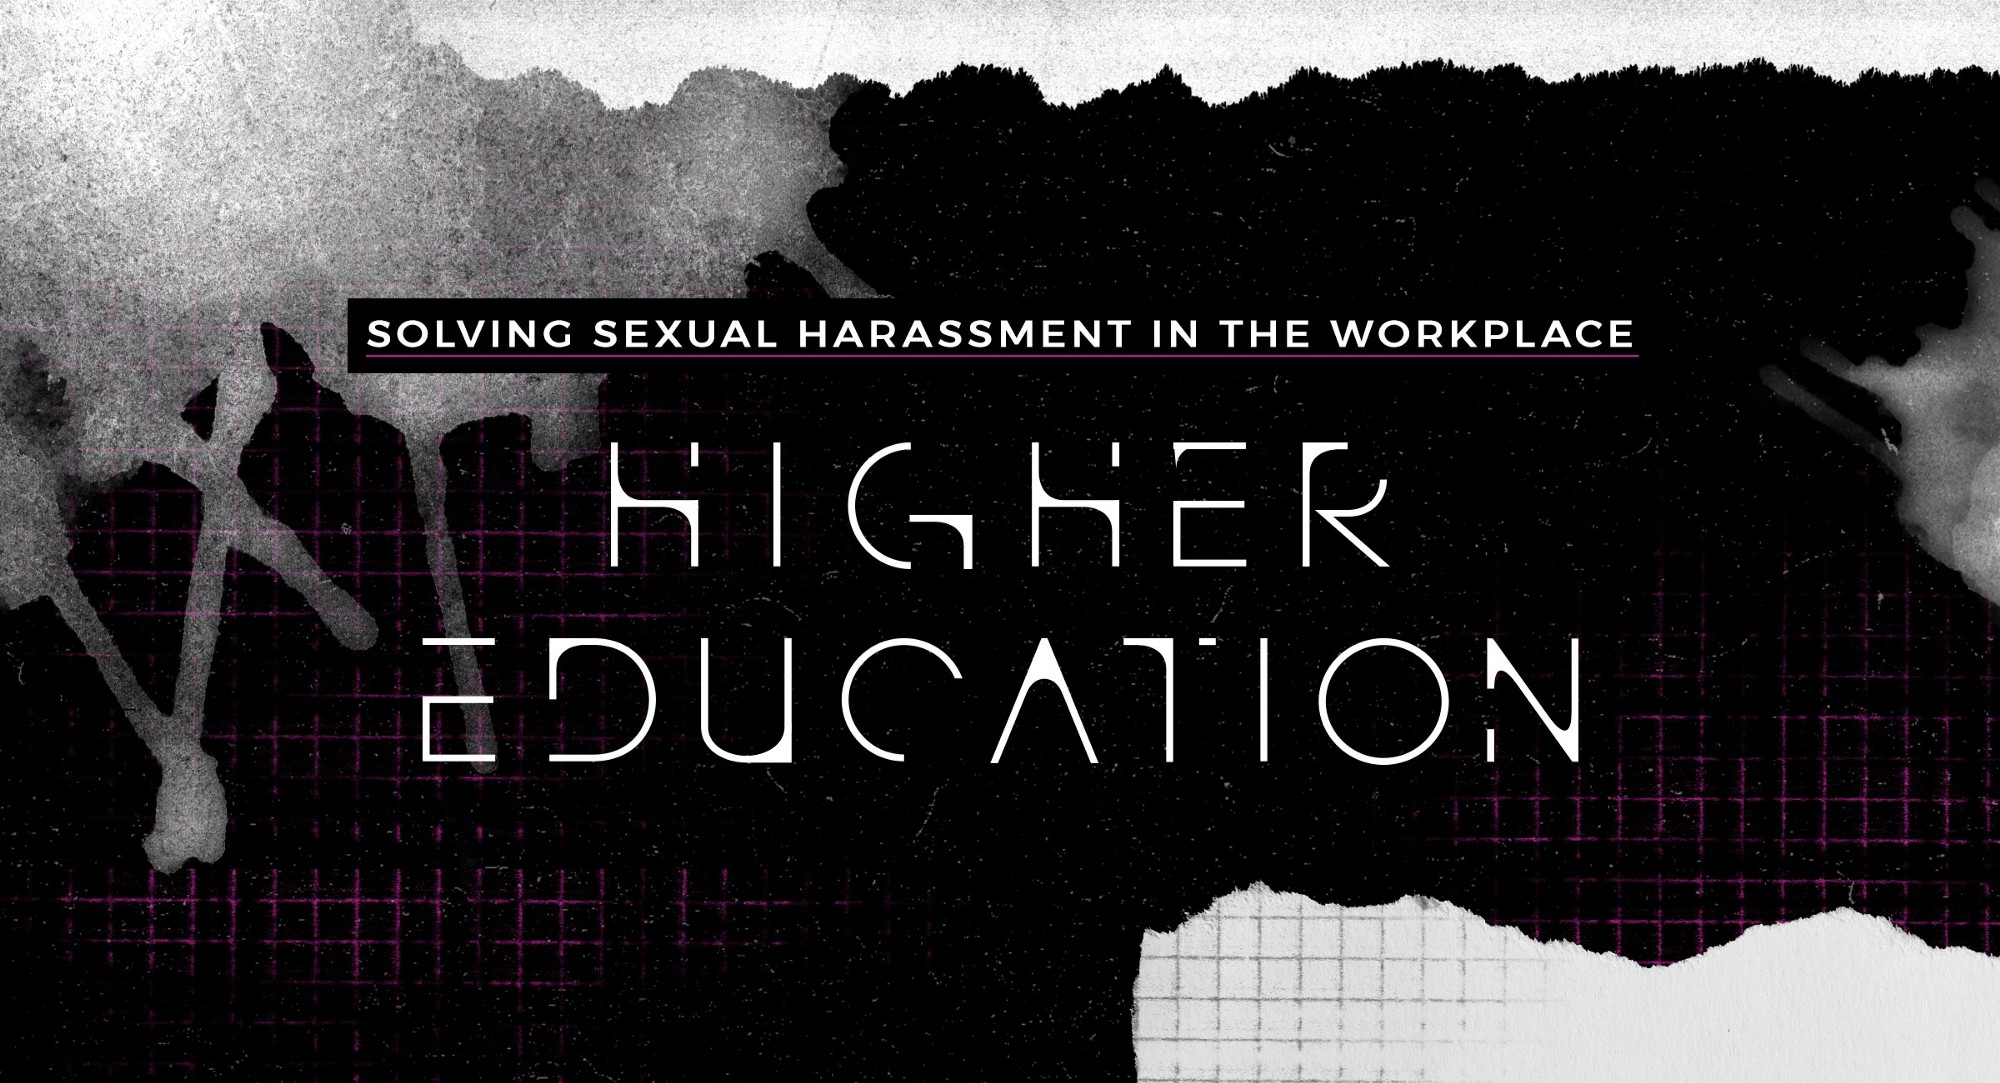 Opinion of title ix sexual harassment